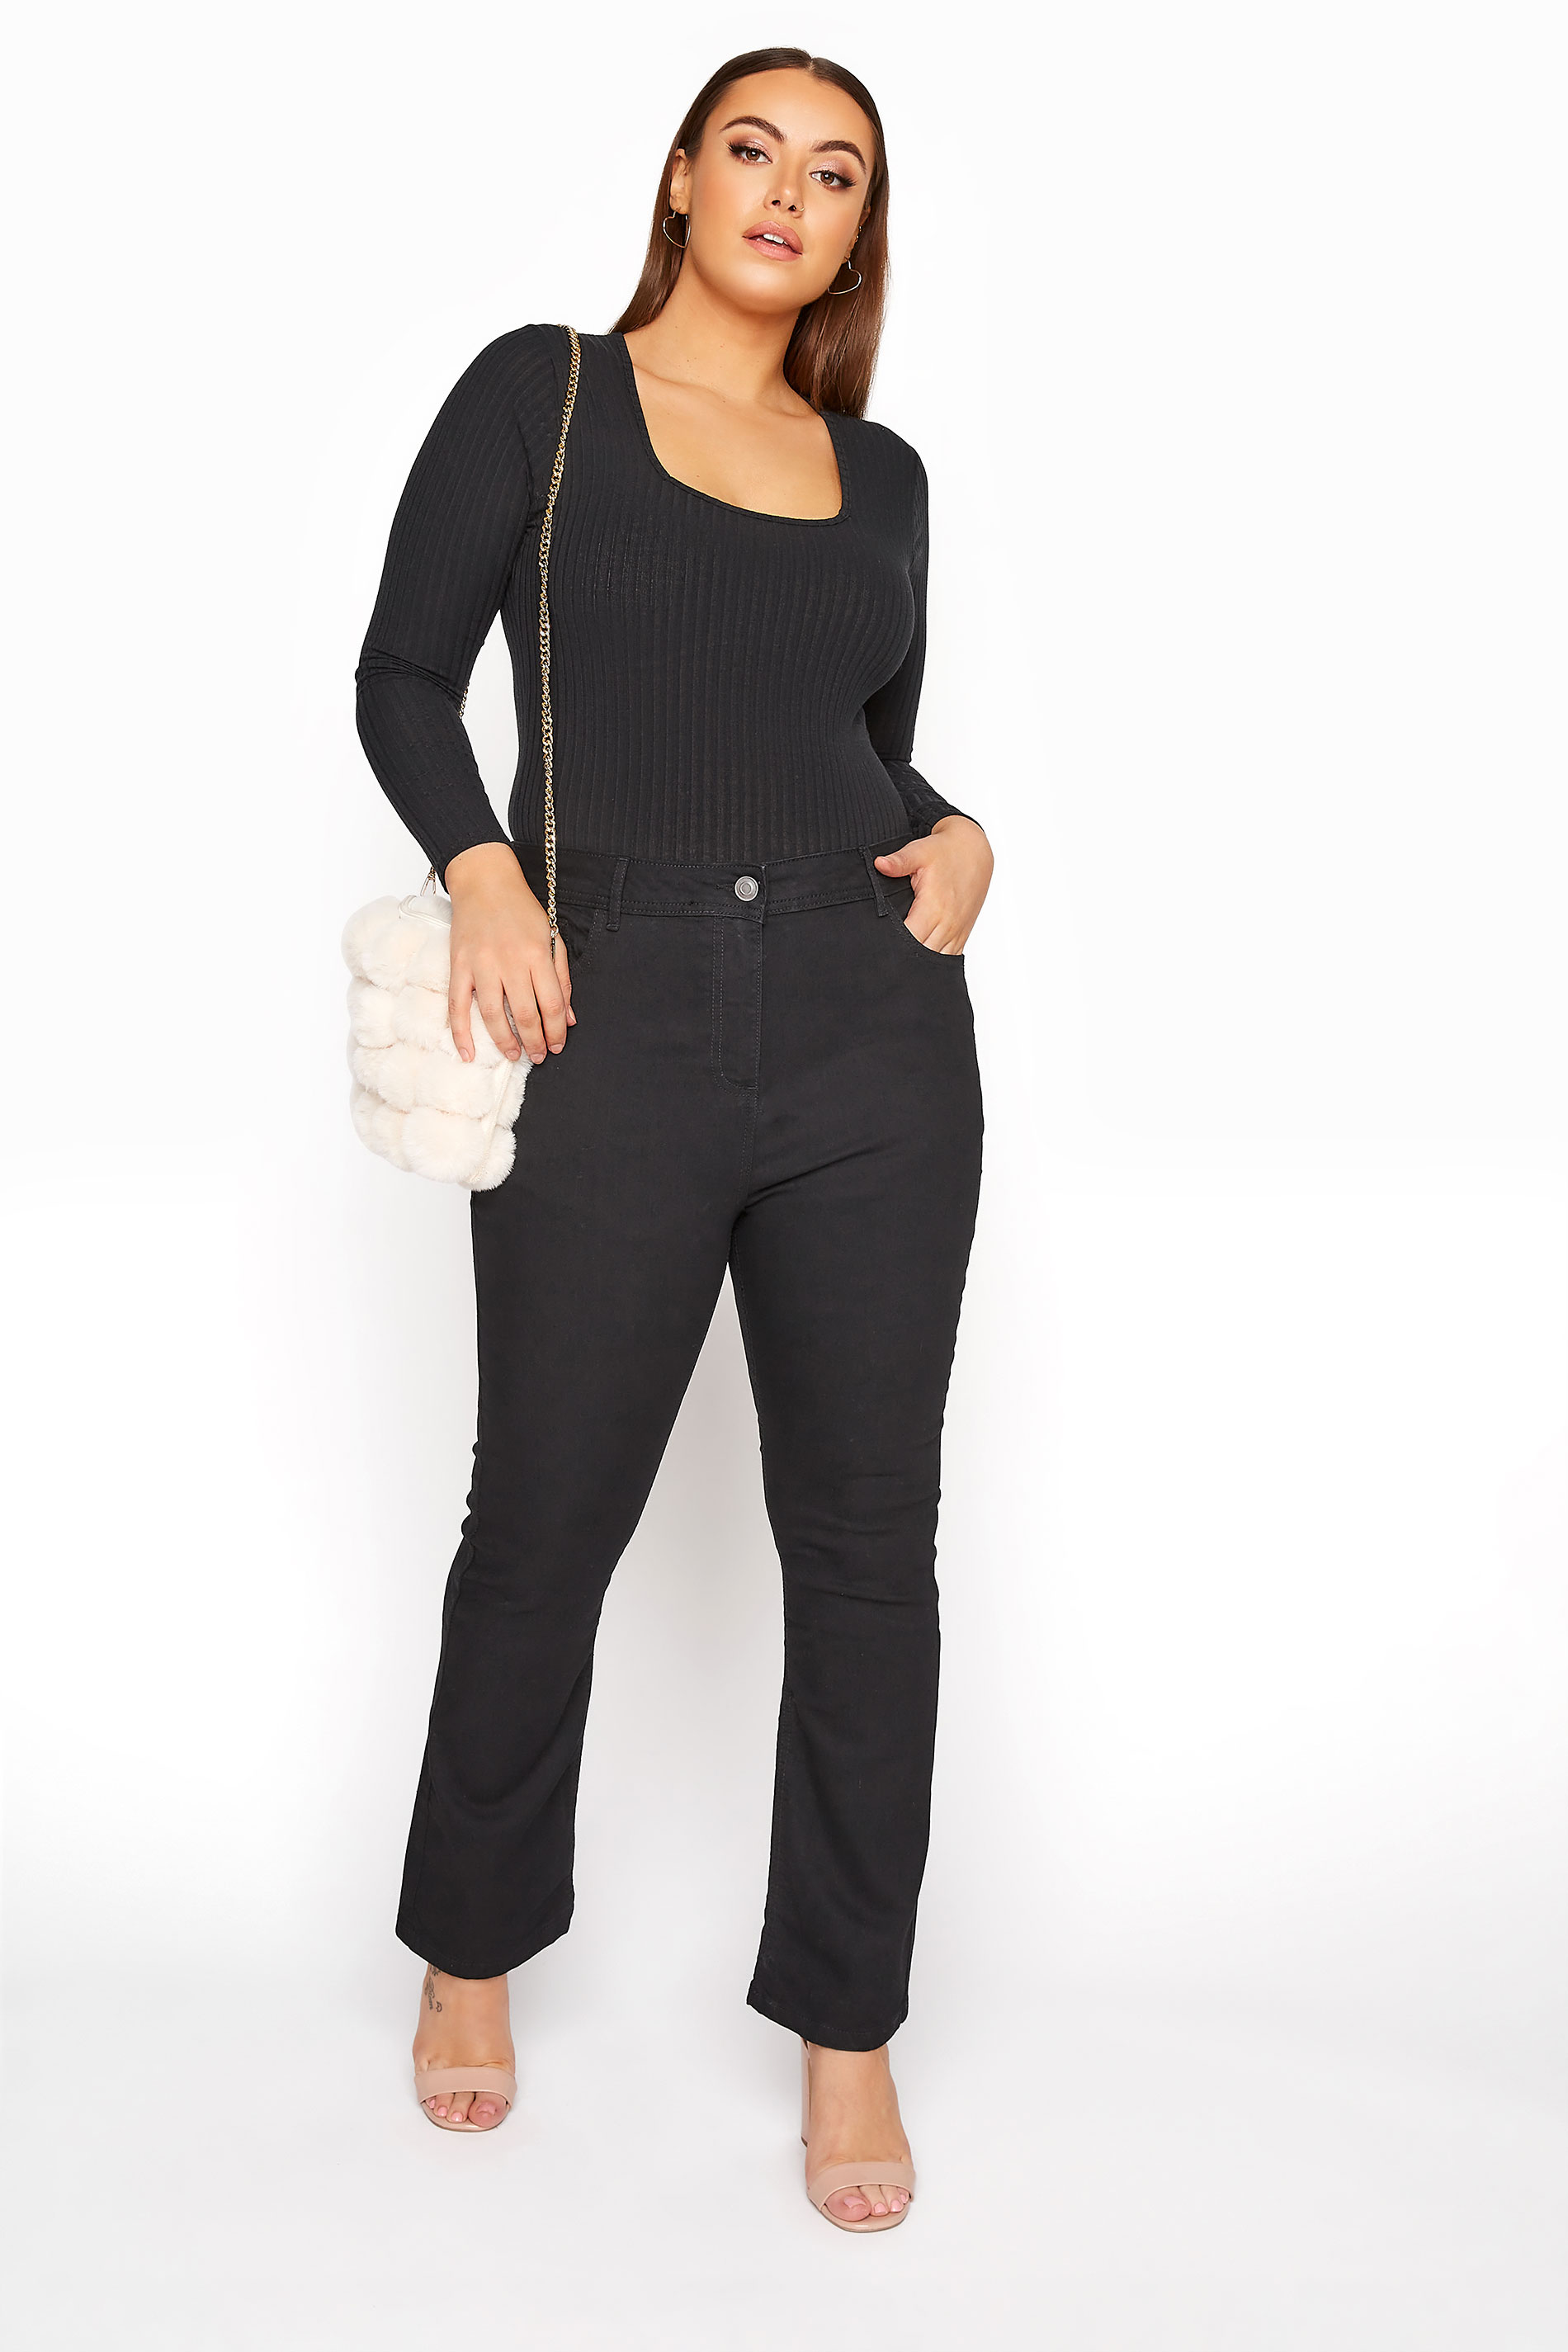 Black Bootcut ISLA Jeans How To Dress Pear Shaped Body